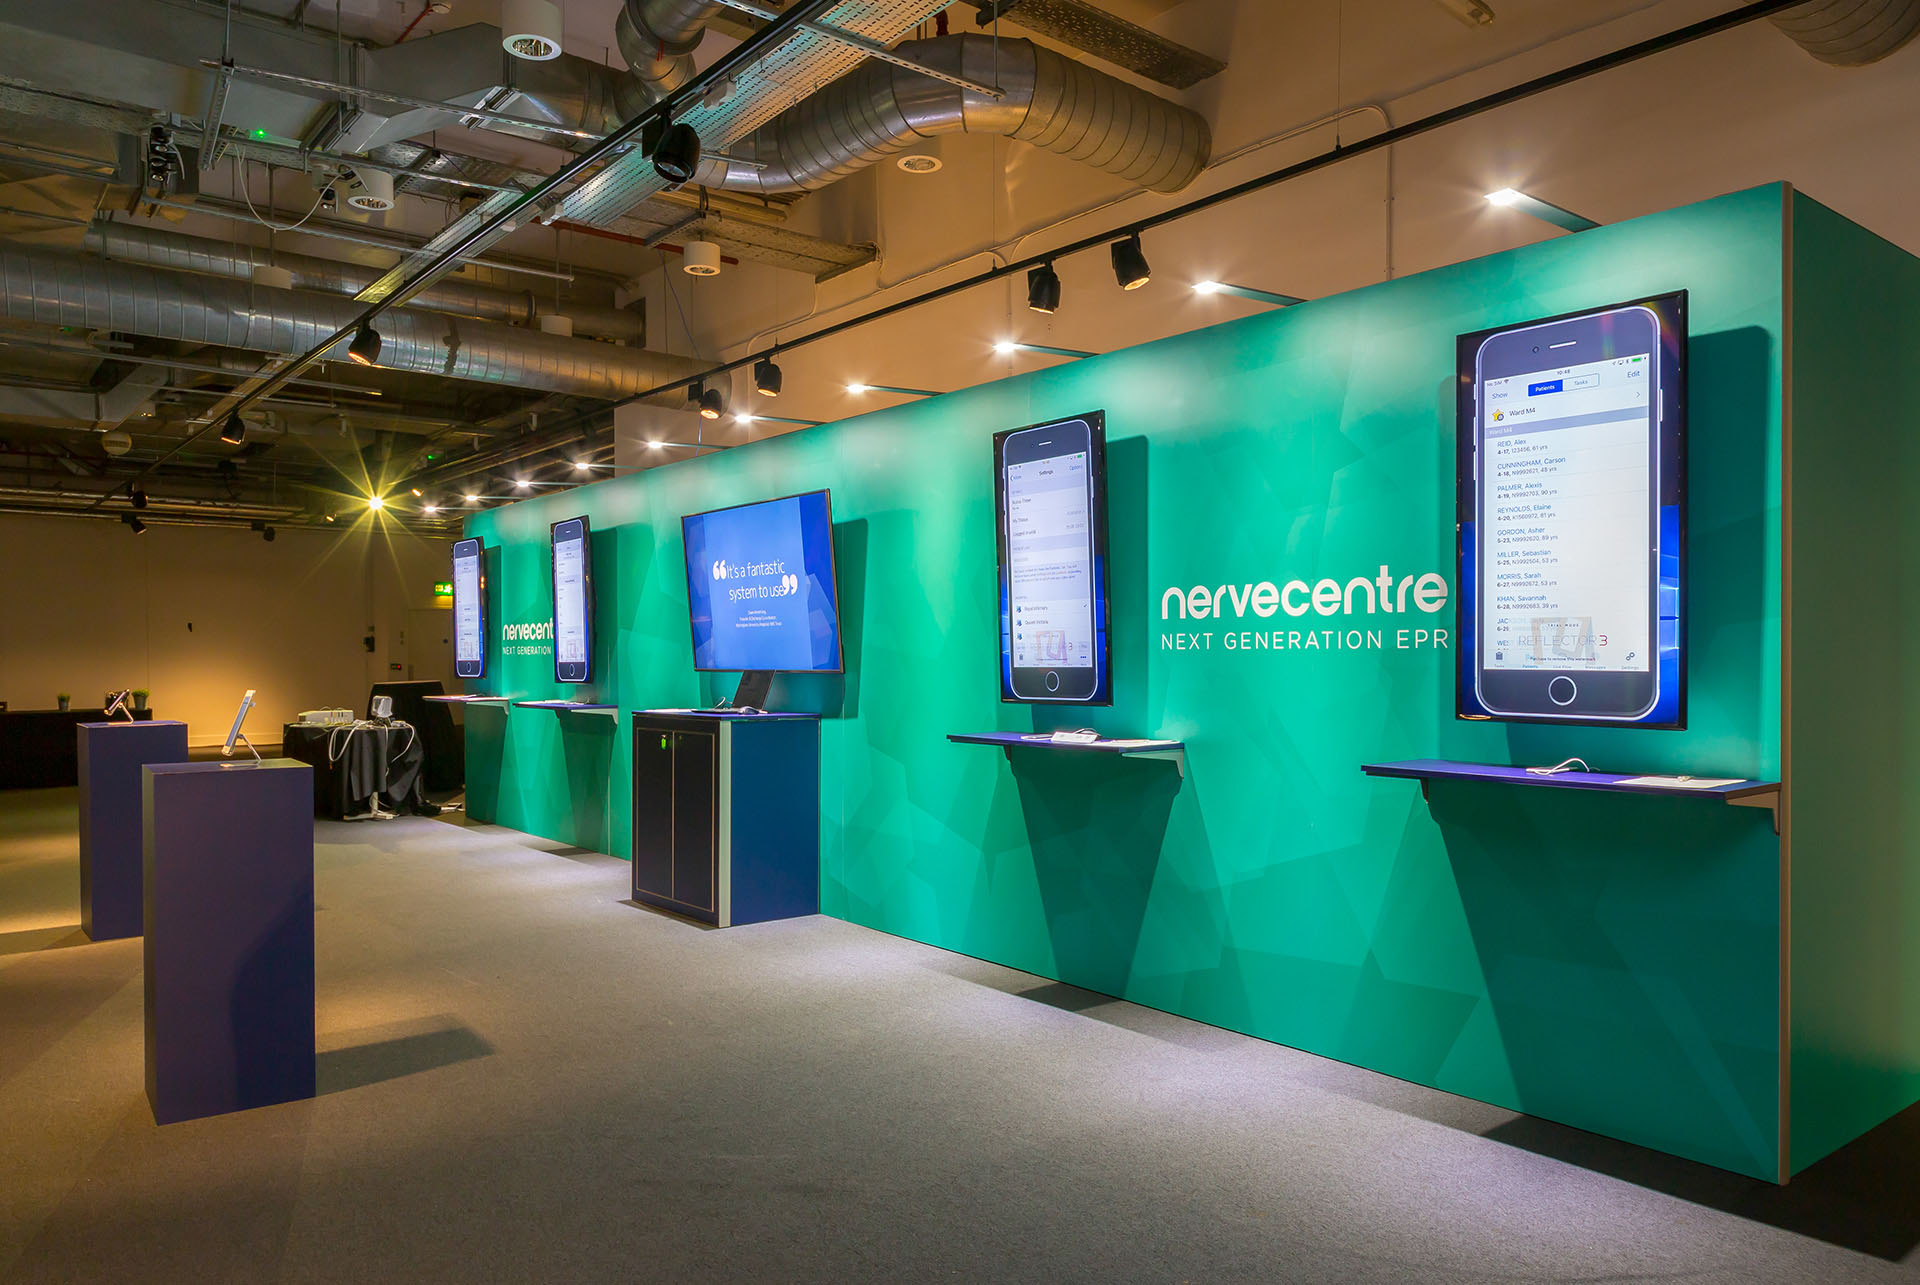 Nervecentre EPR Launch interactive exhibition display by Ouno Creative, Farnborough.